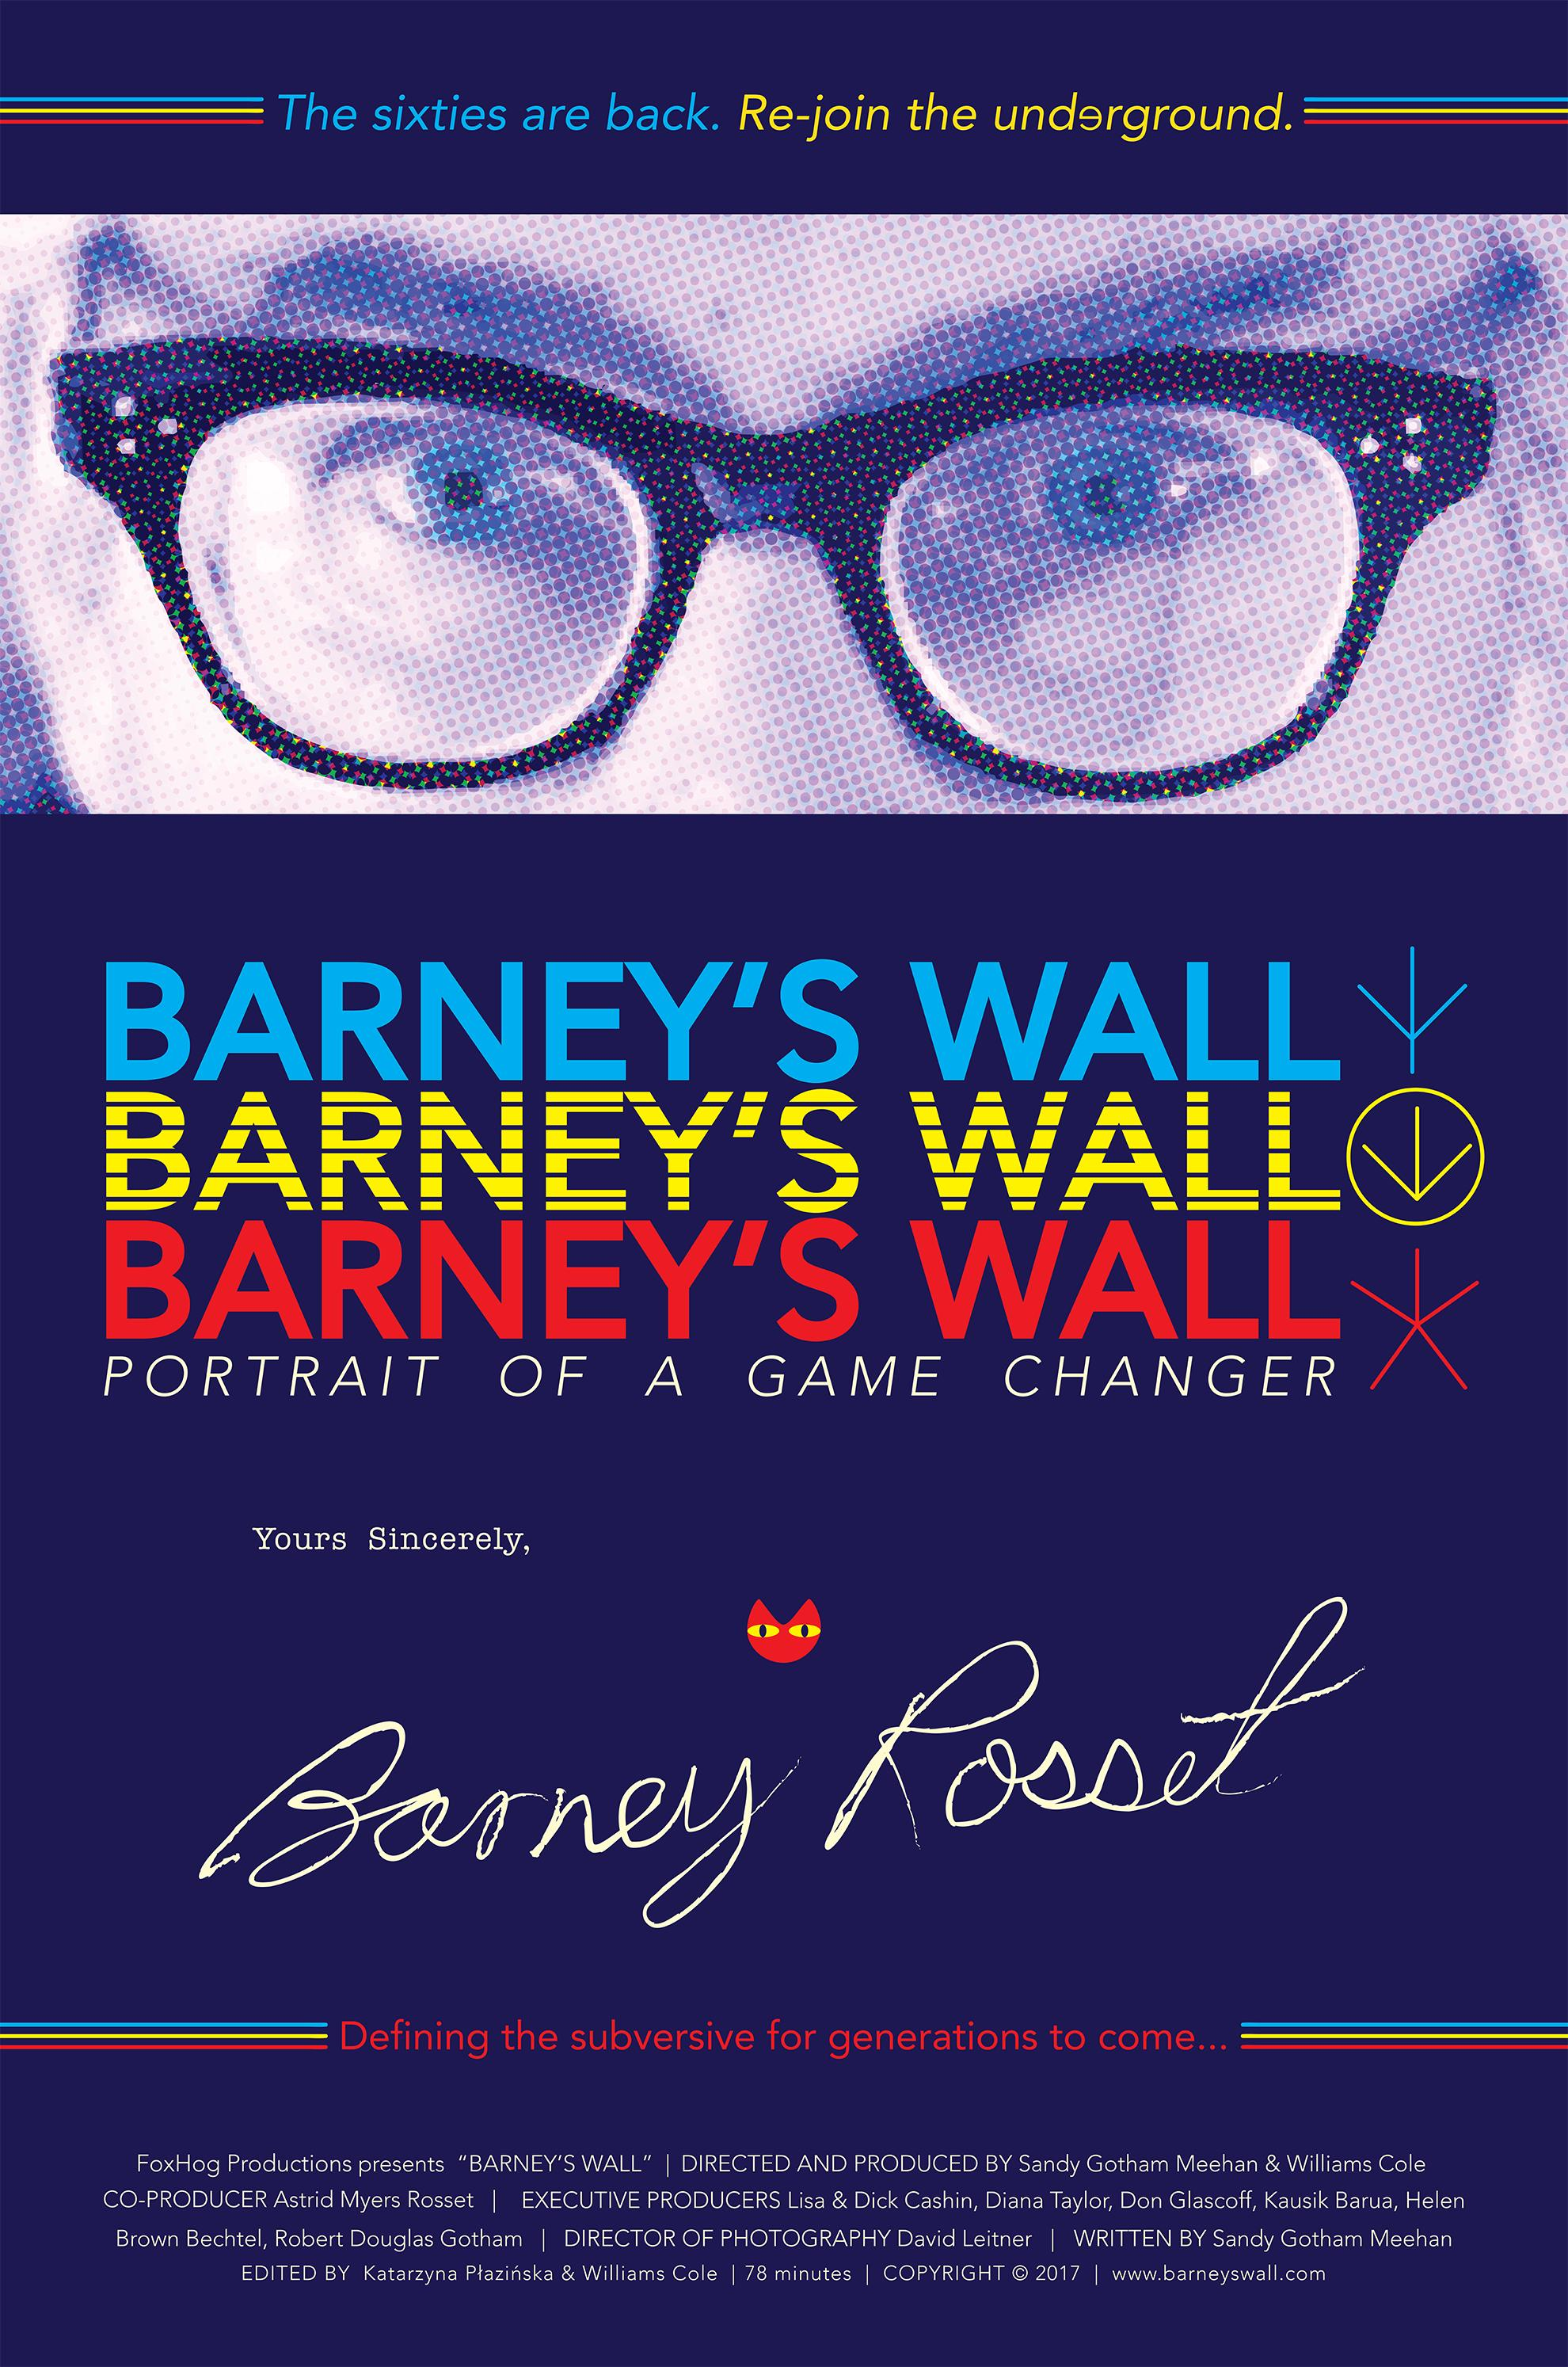 Barney's Wall: Portrait of a Game Changer - IMDb